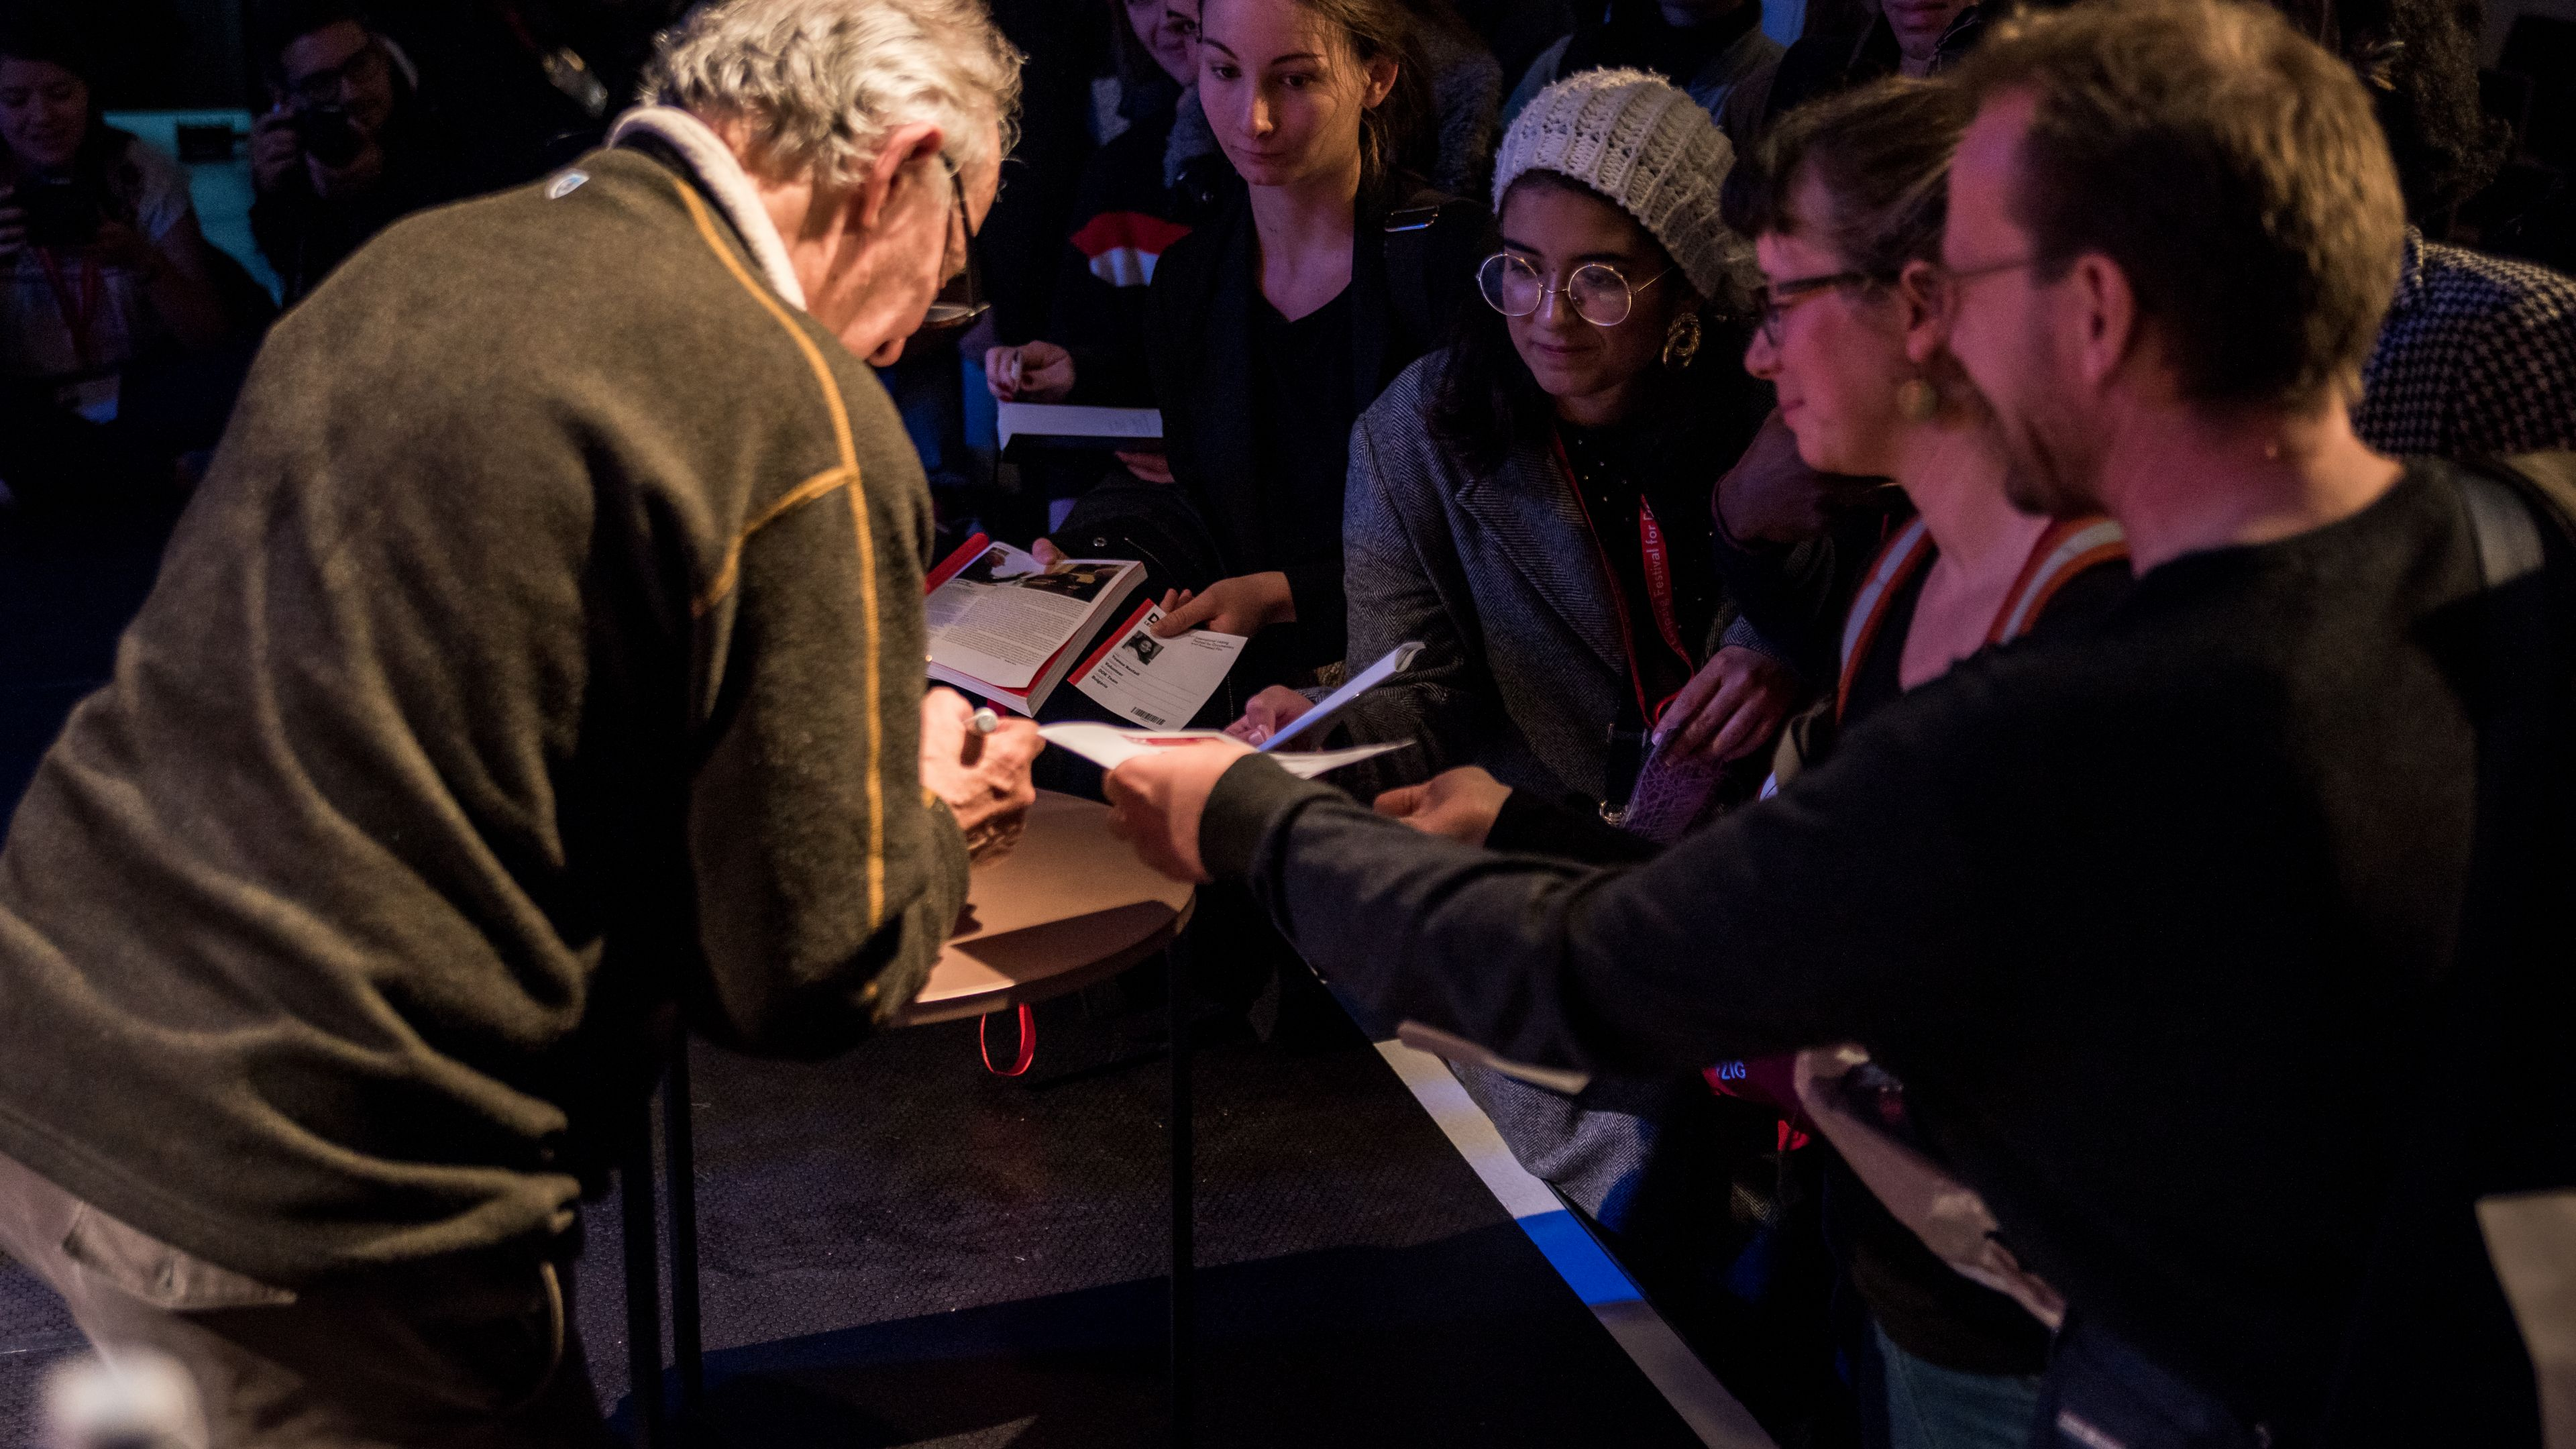 Werner Herzog knees on stage, many people before the stage try to hand him their programms for an autograph